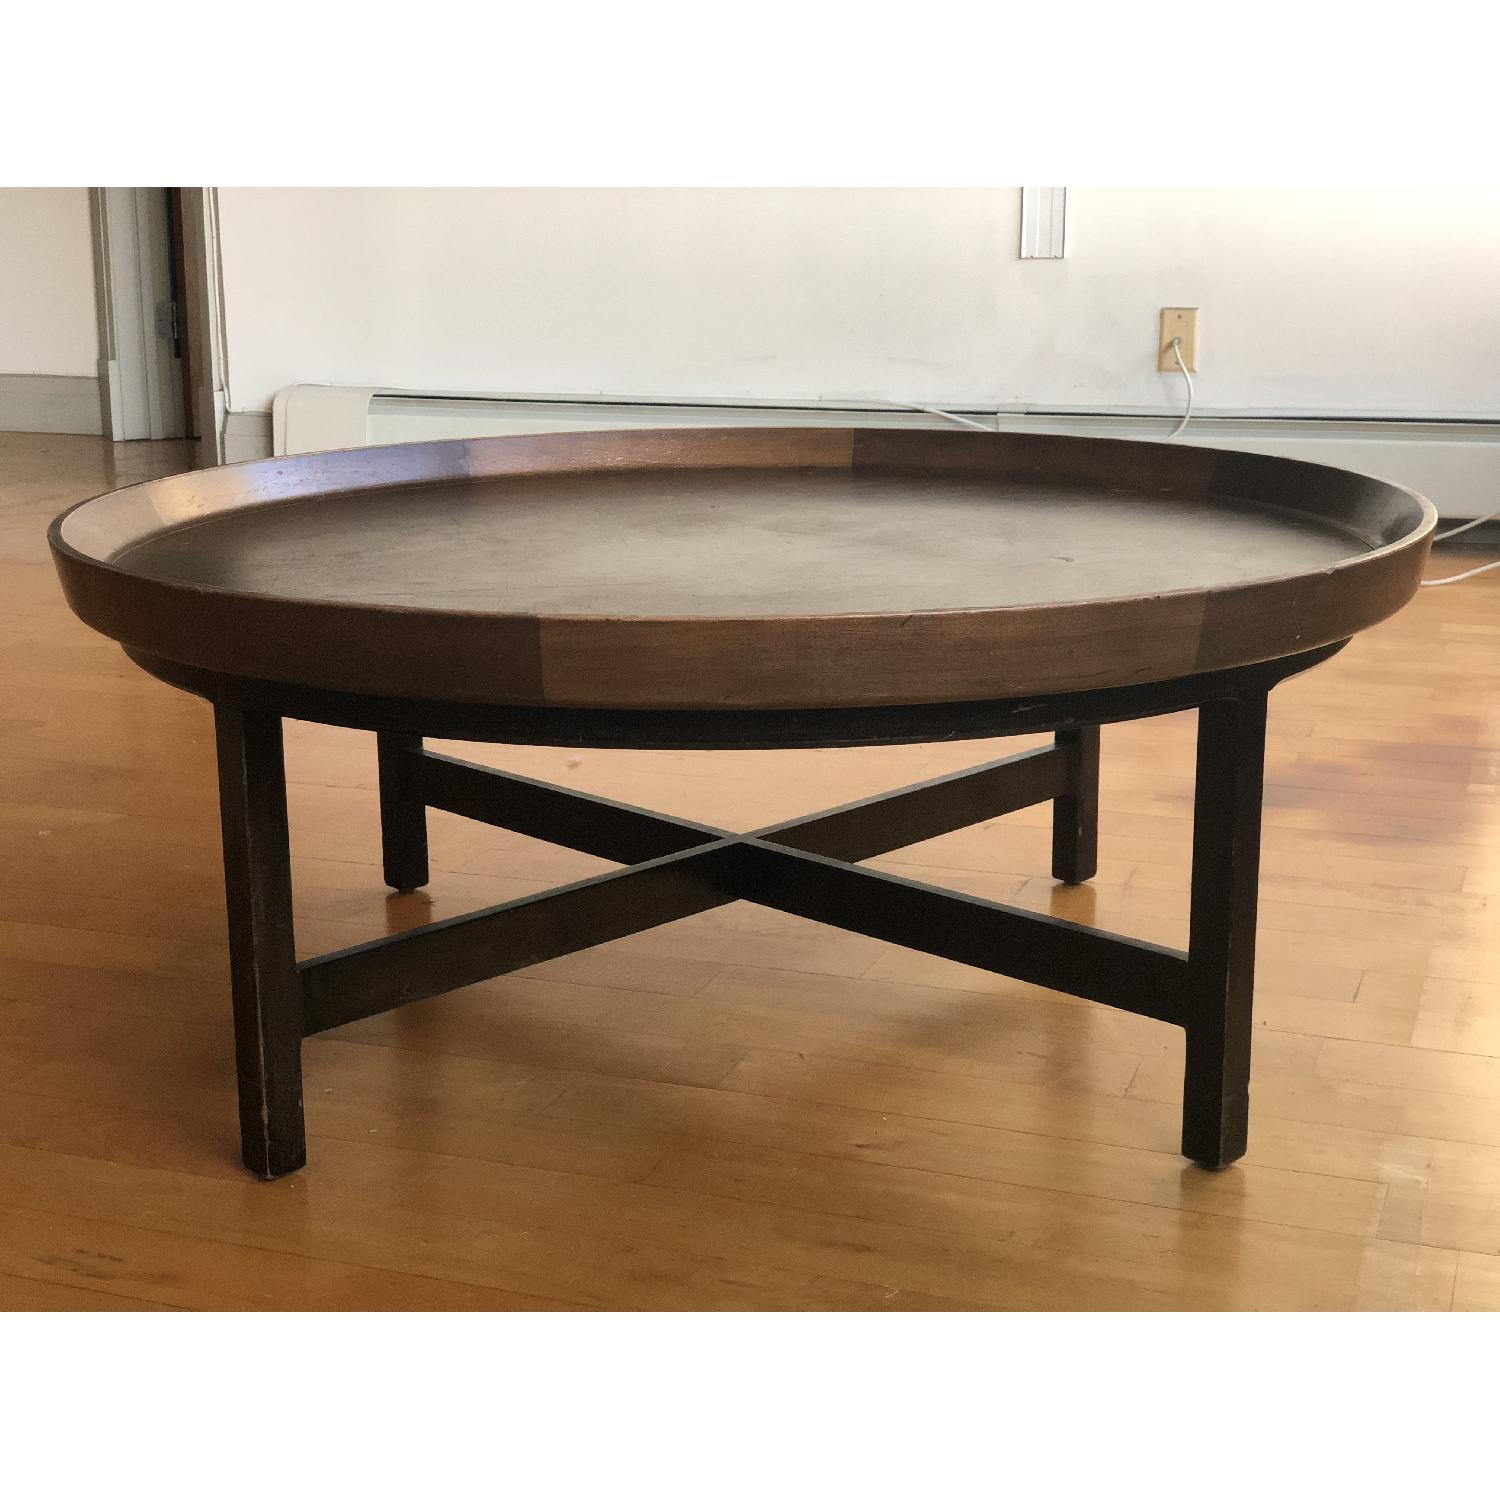 Antique Solid Wood Round Coffee Table - image-8